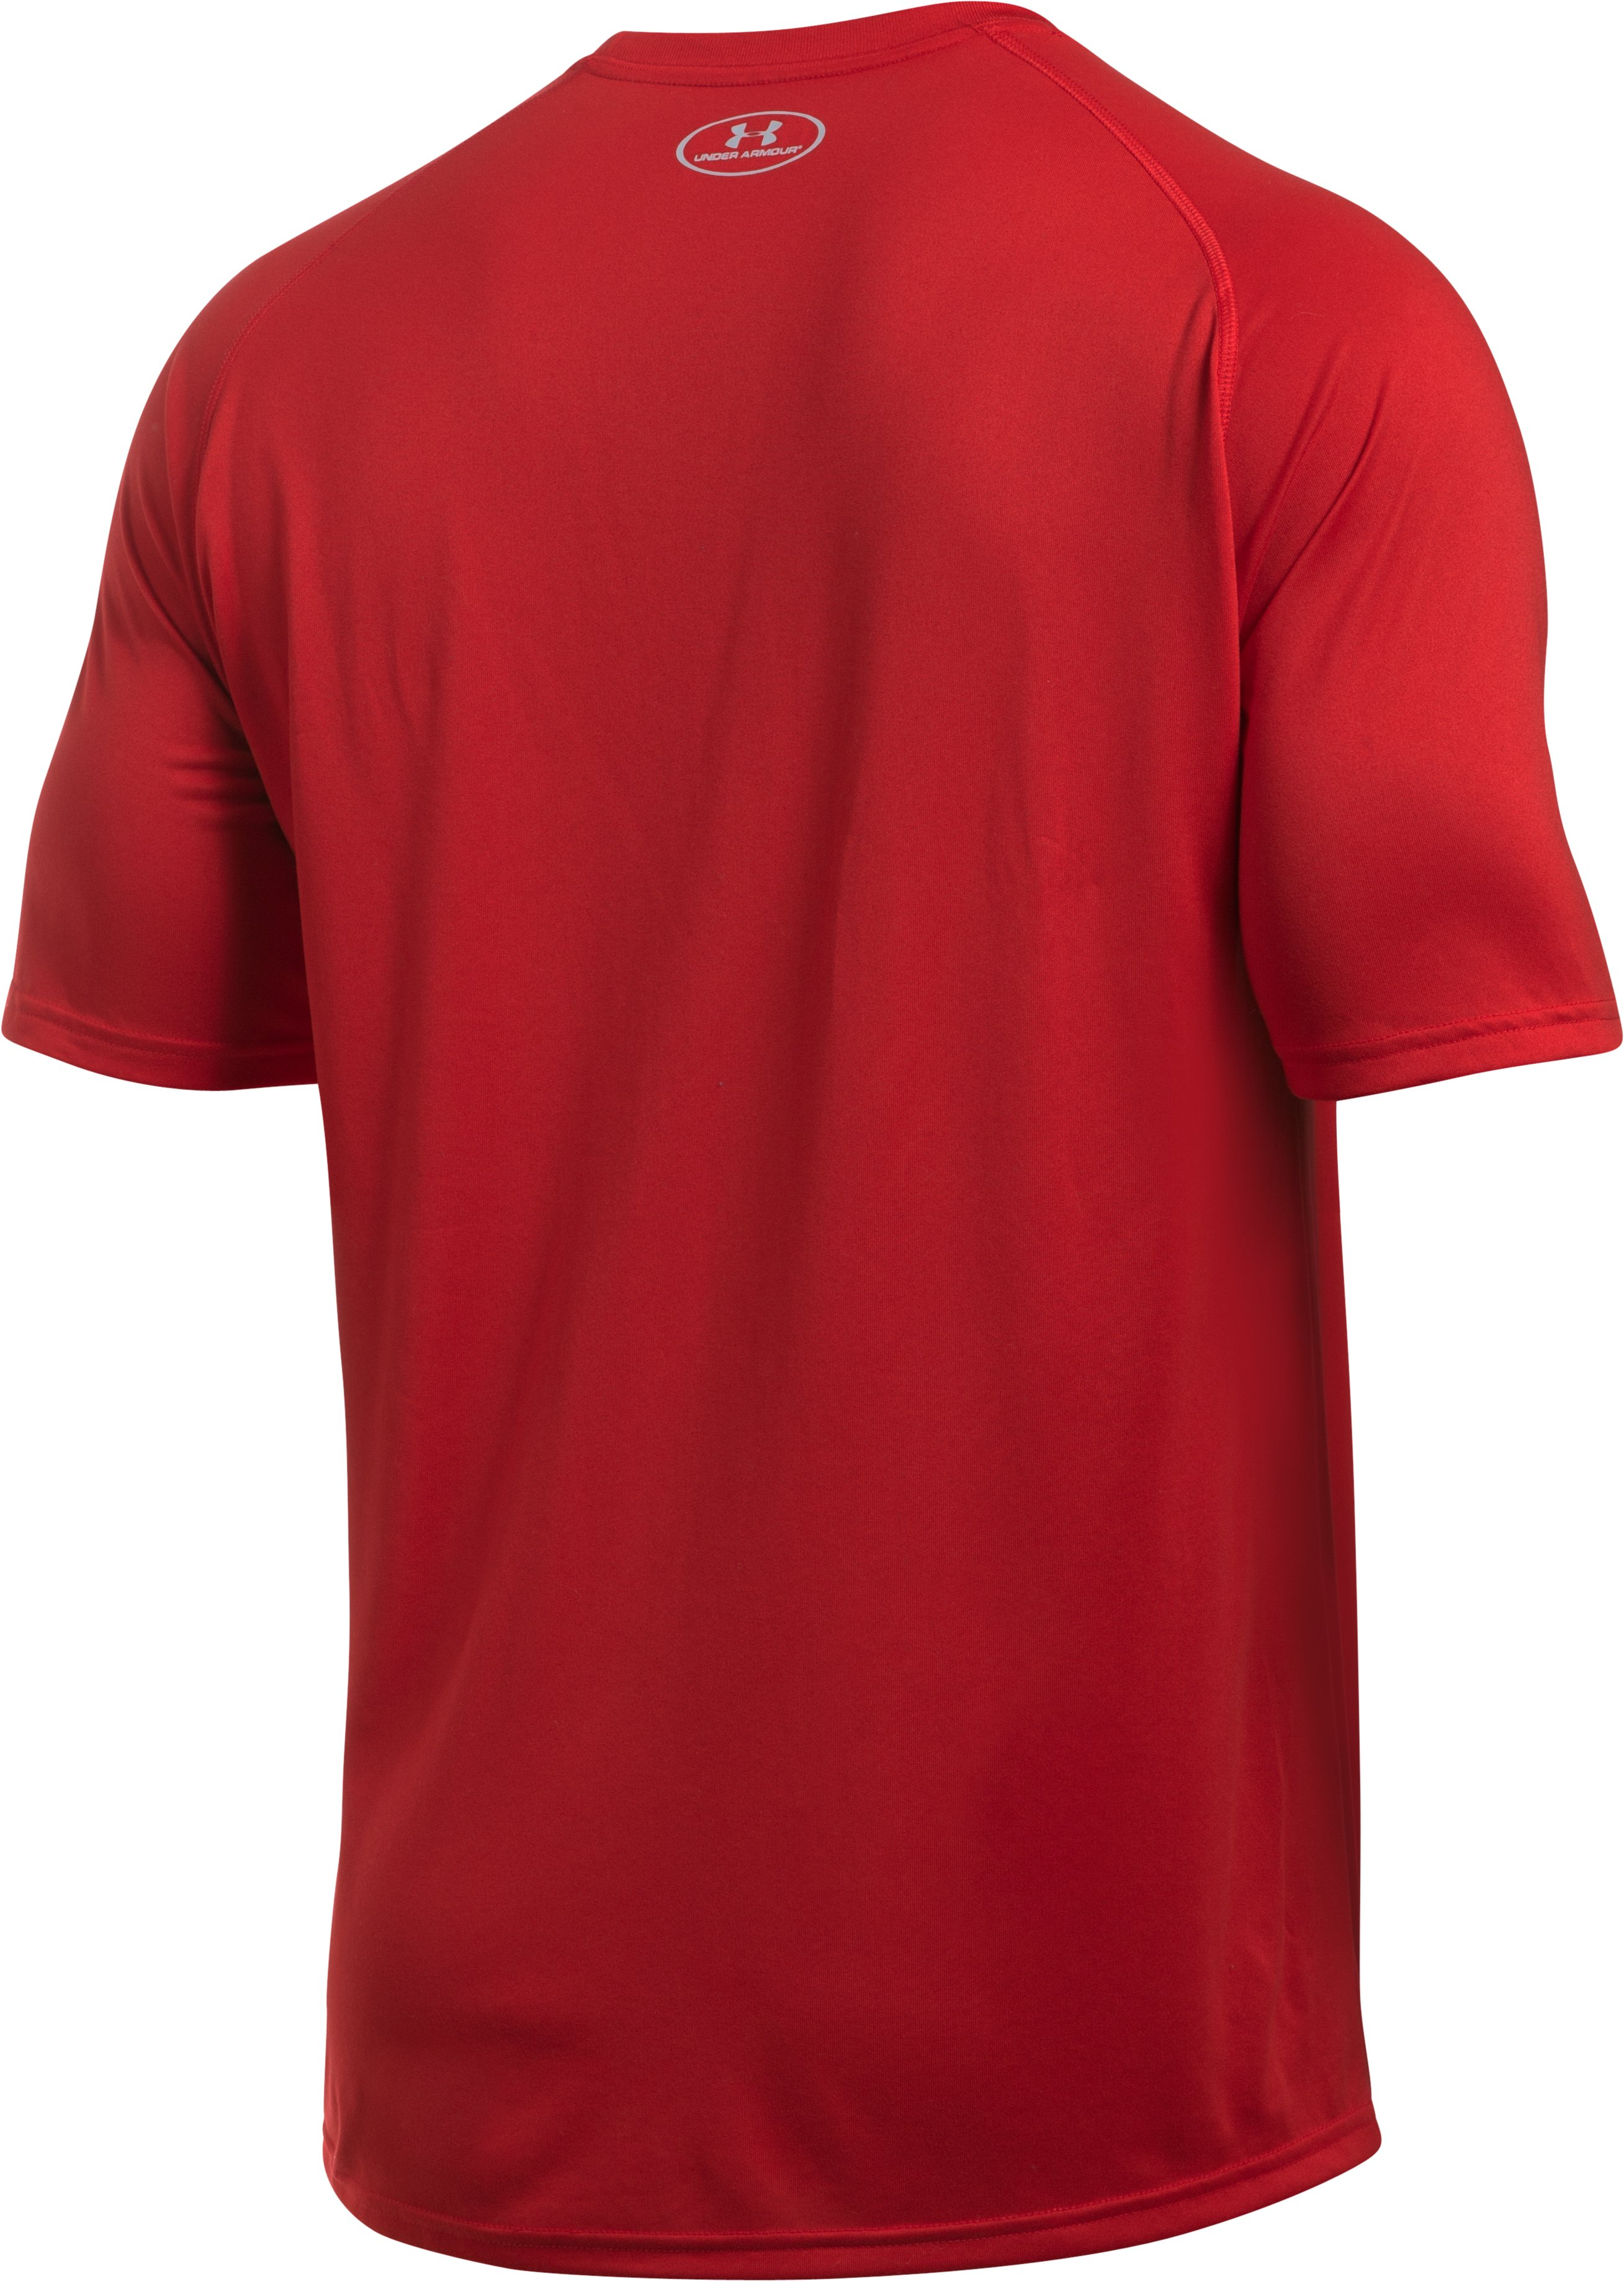 Men's Los Angeles Angels Team Tech™ T-Shirt, Red, undefined